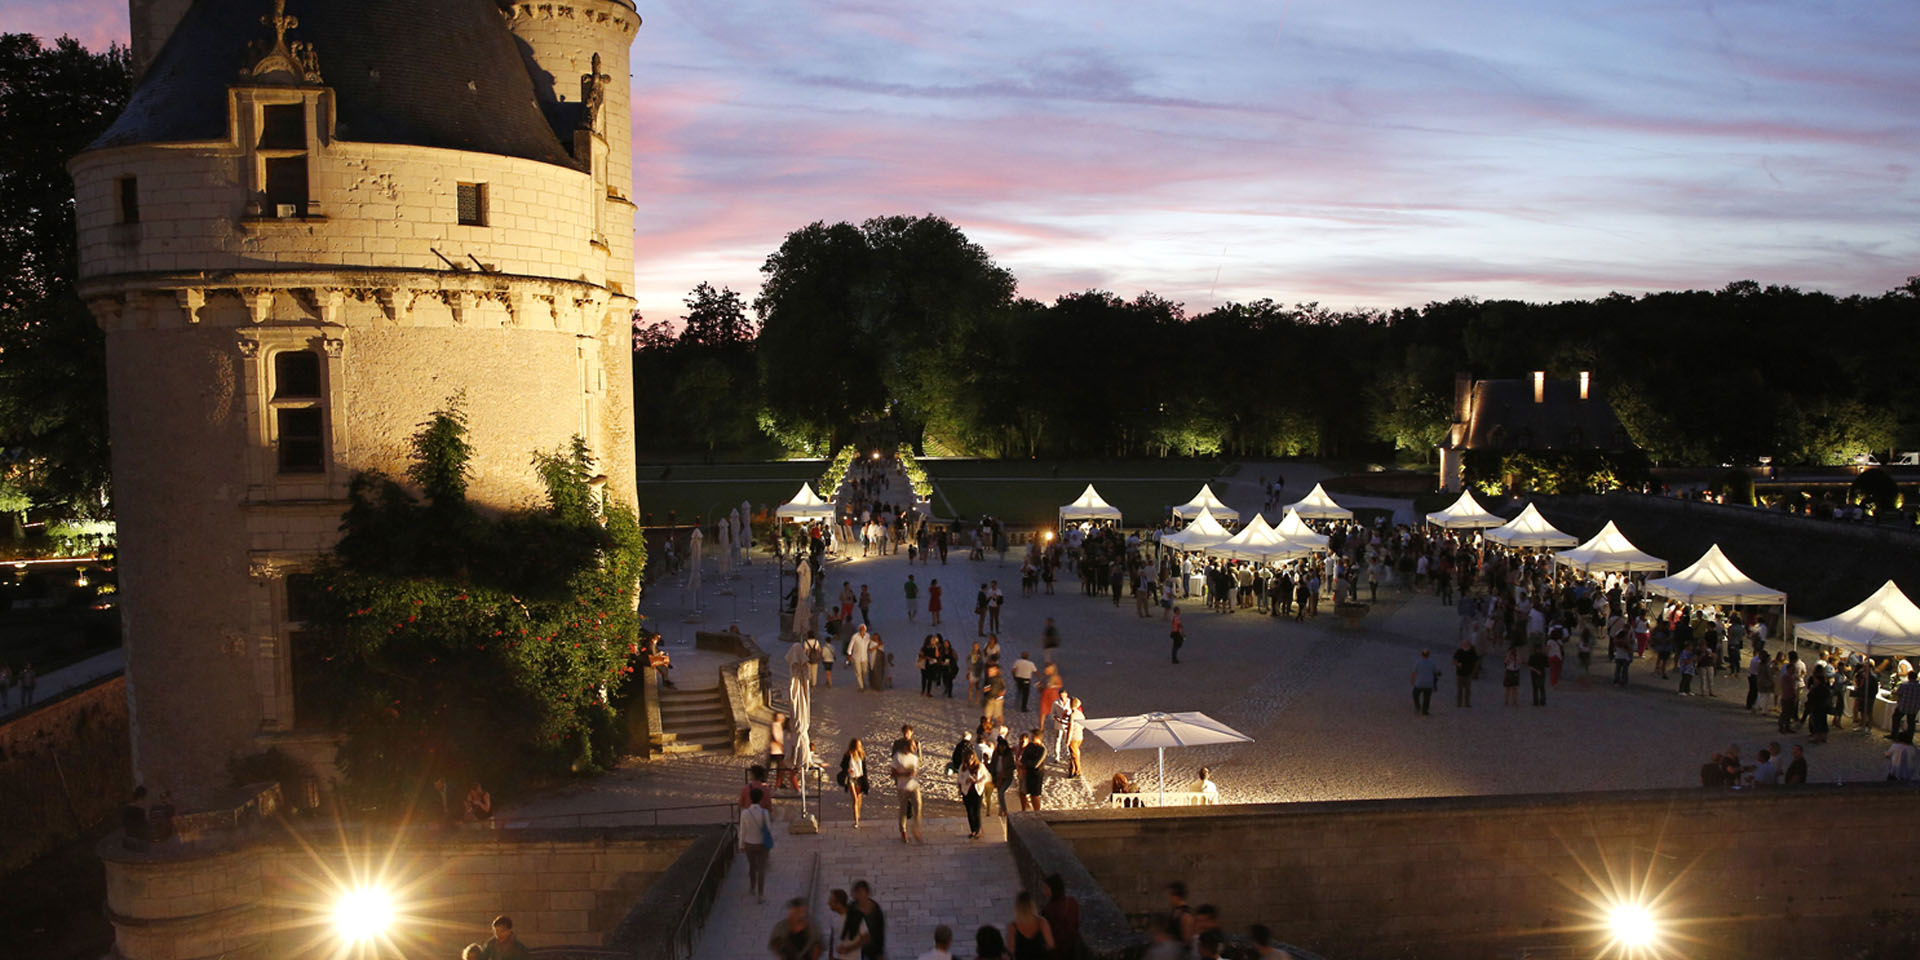 Wine tasting under the star - Château of Chenonceau